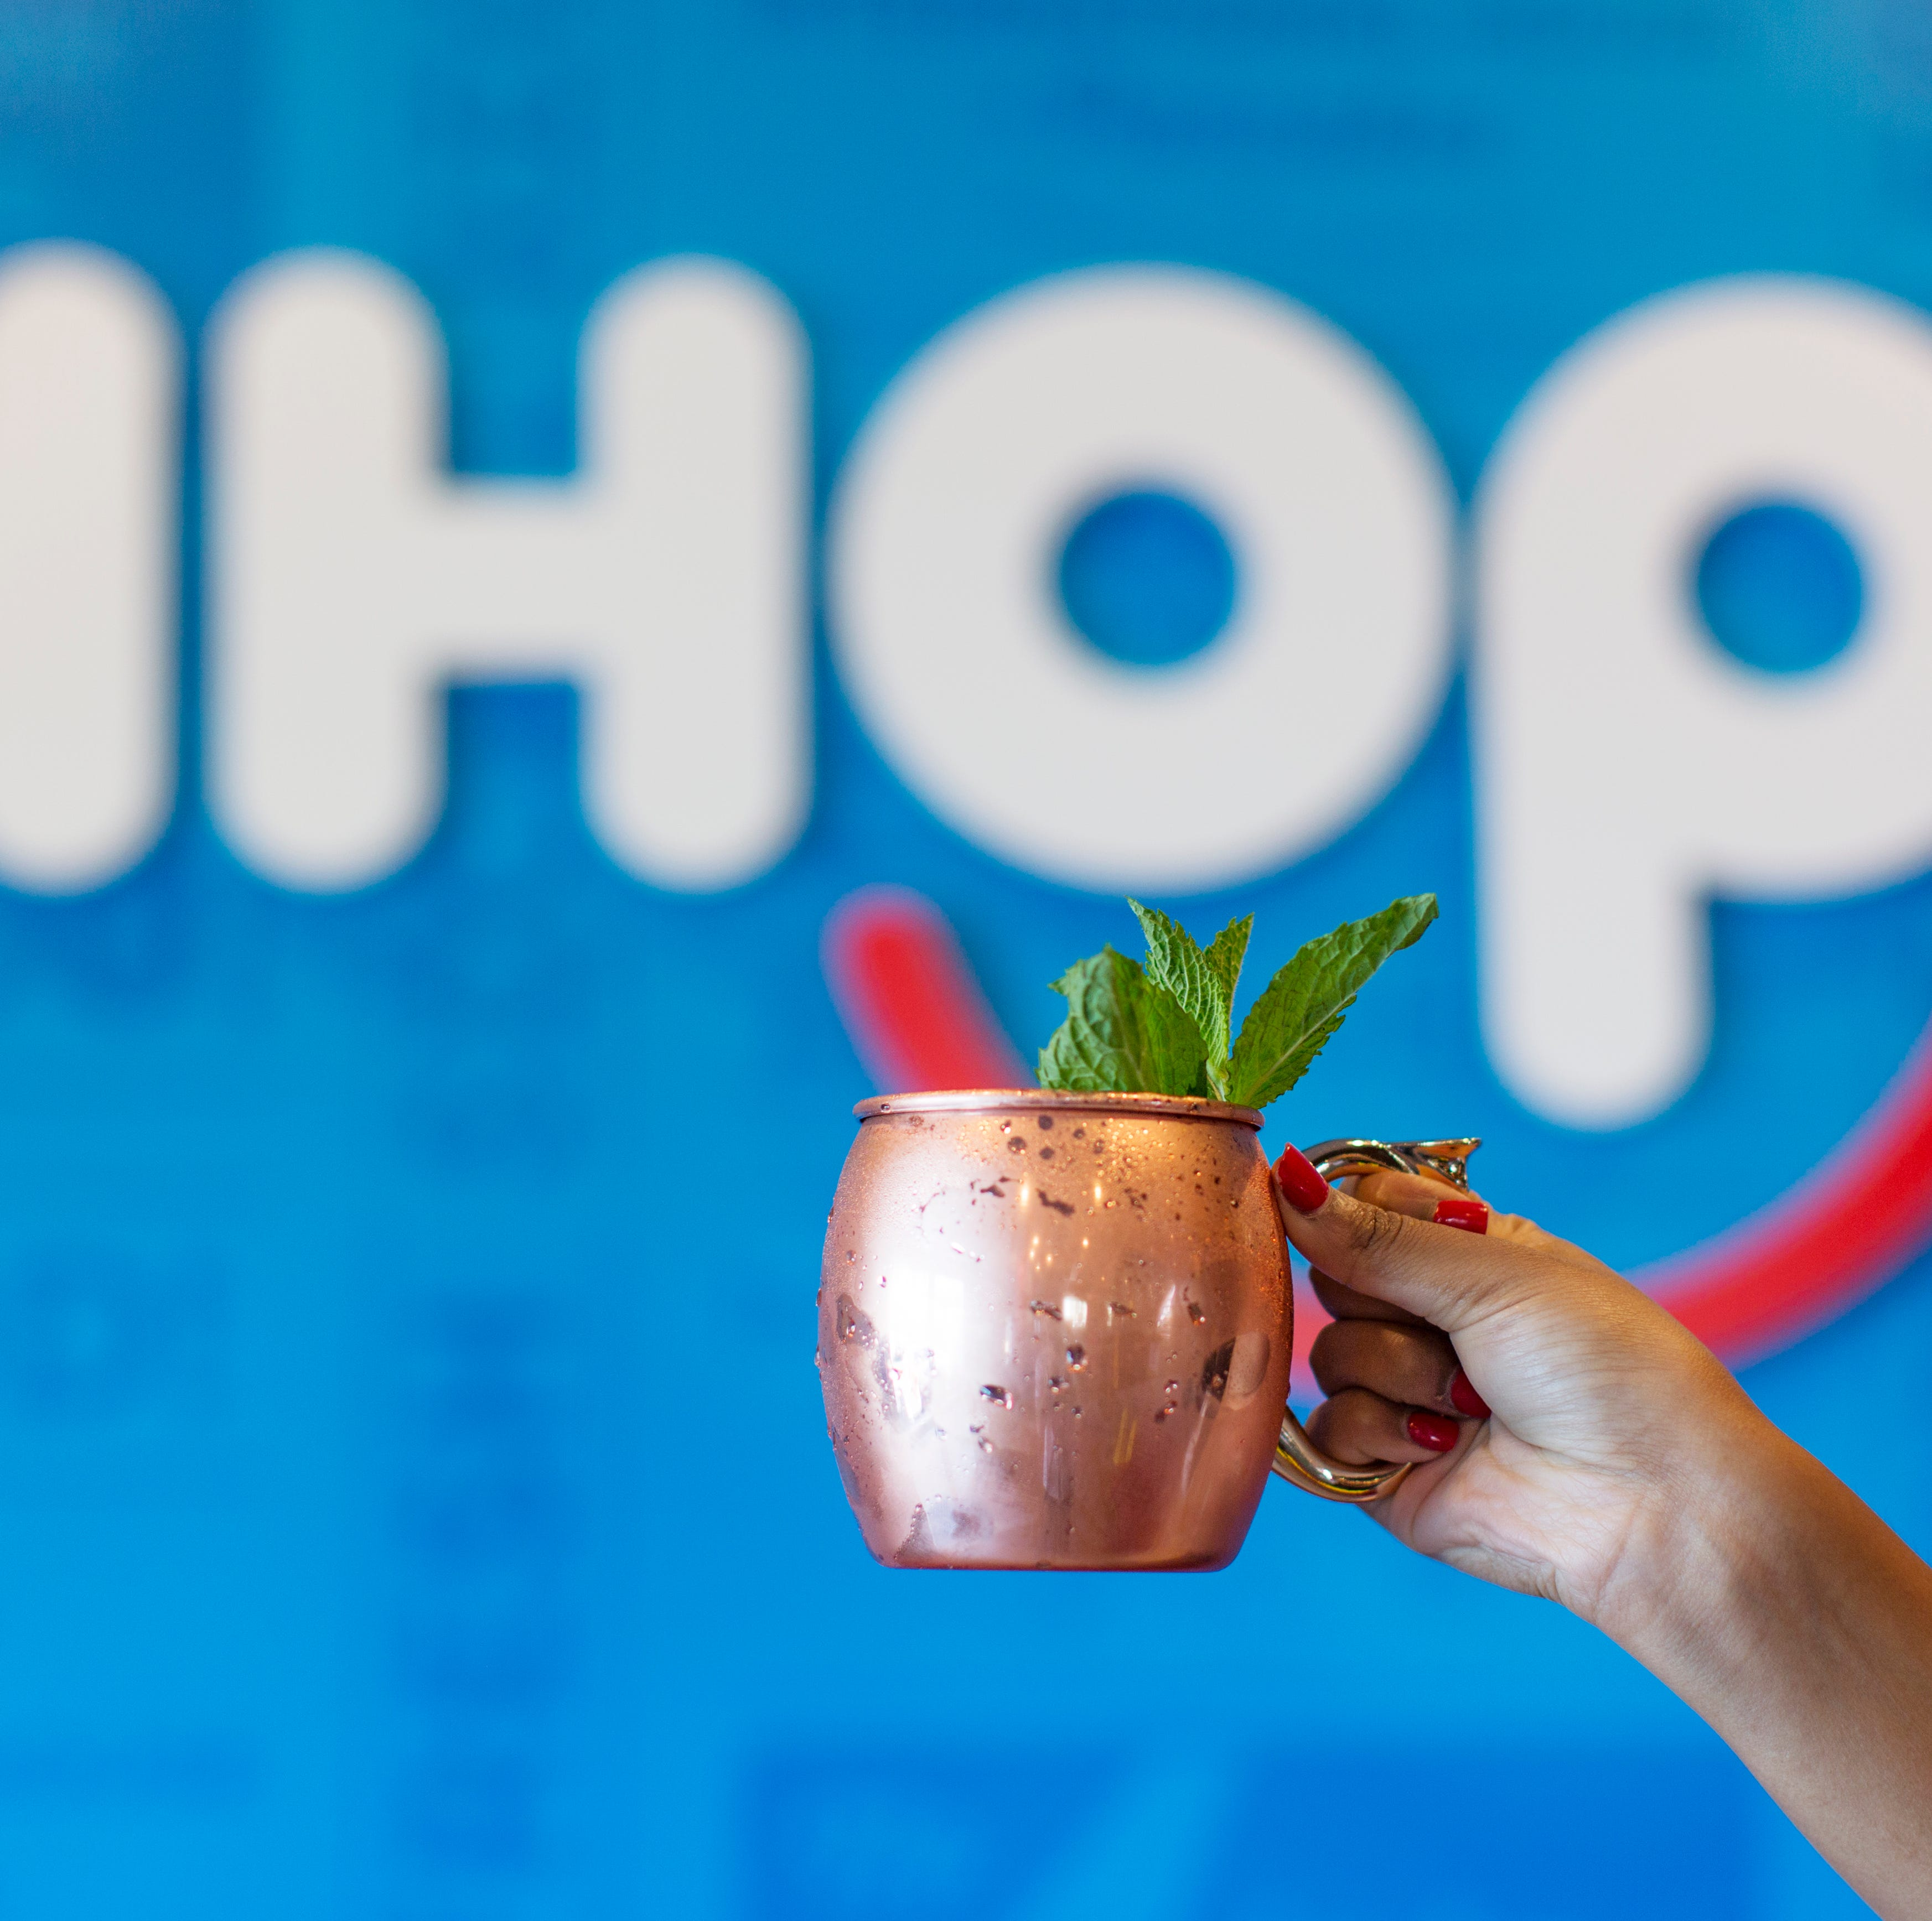 Free pancakes and full bar: Welcome to the new IHOP restaurant in Phoenix